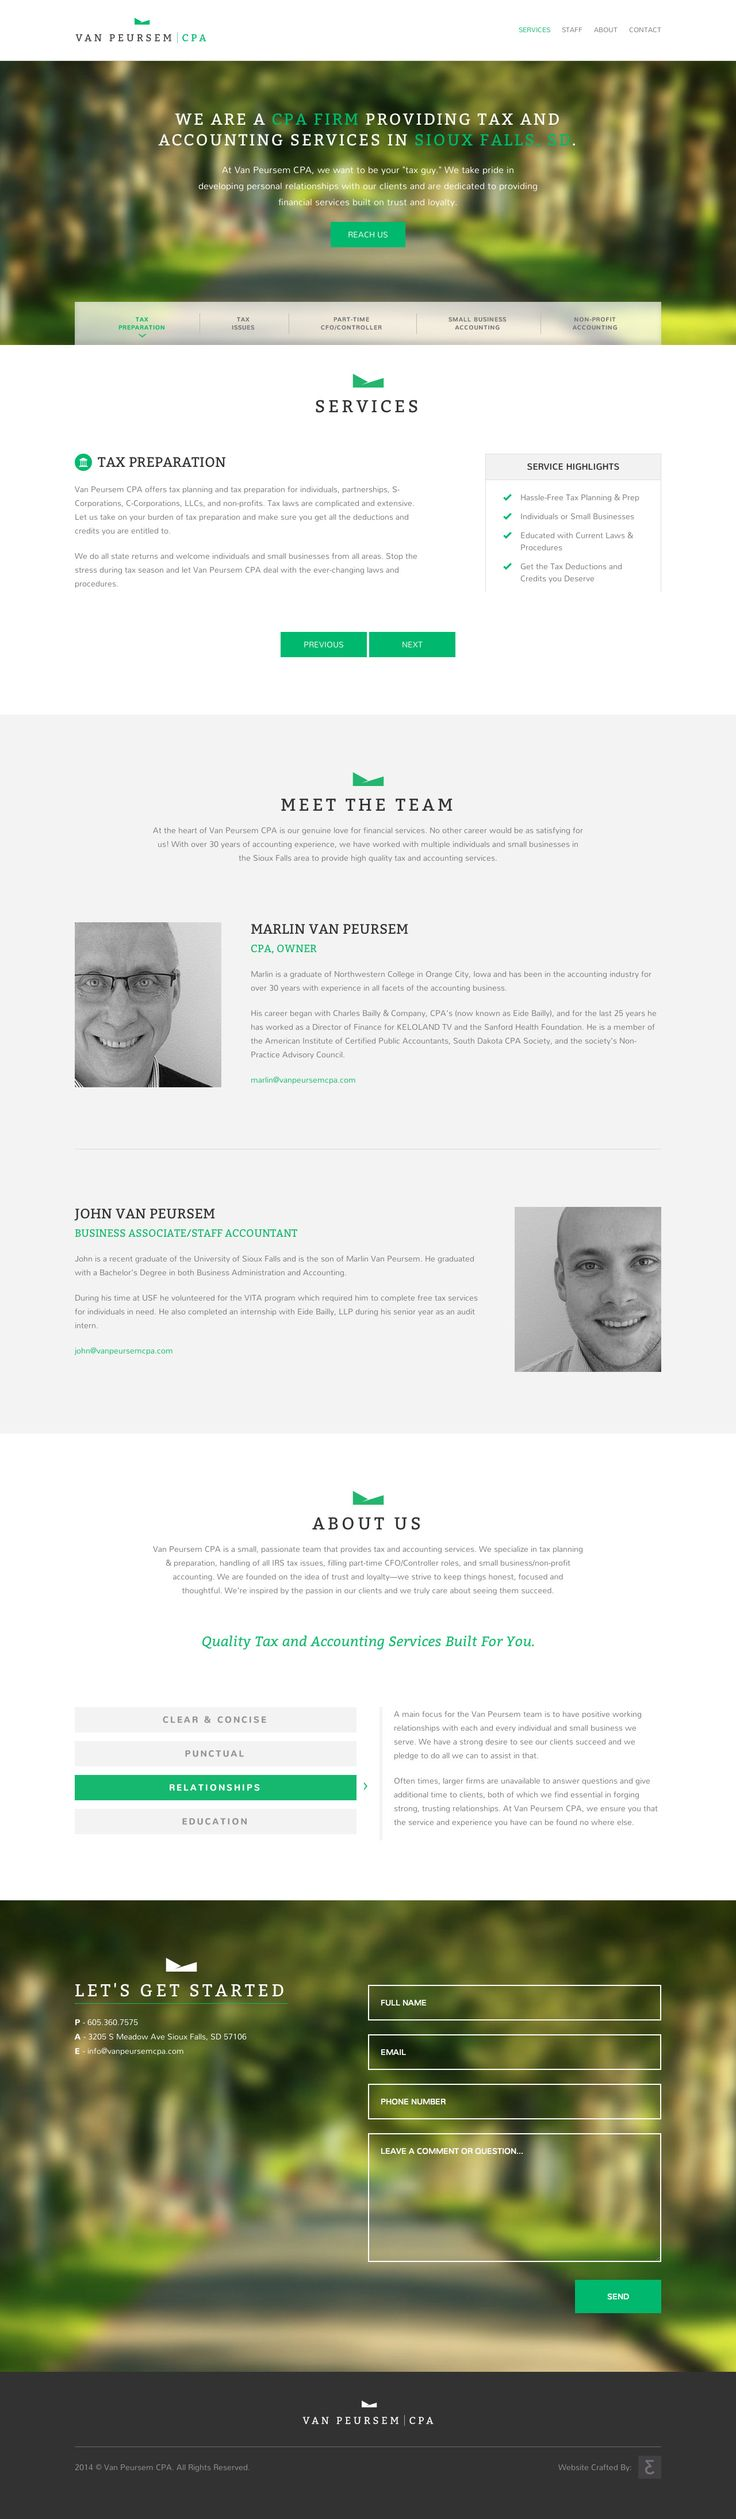 Clean responsive one pager for tax and accounting service Van Peursem CPA. Great to see more one pagers in this industry, it has all the relevant info you need and has arranged the fair amount of content well.